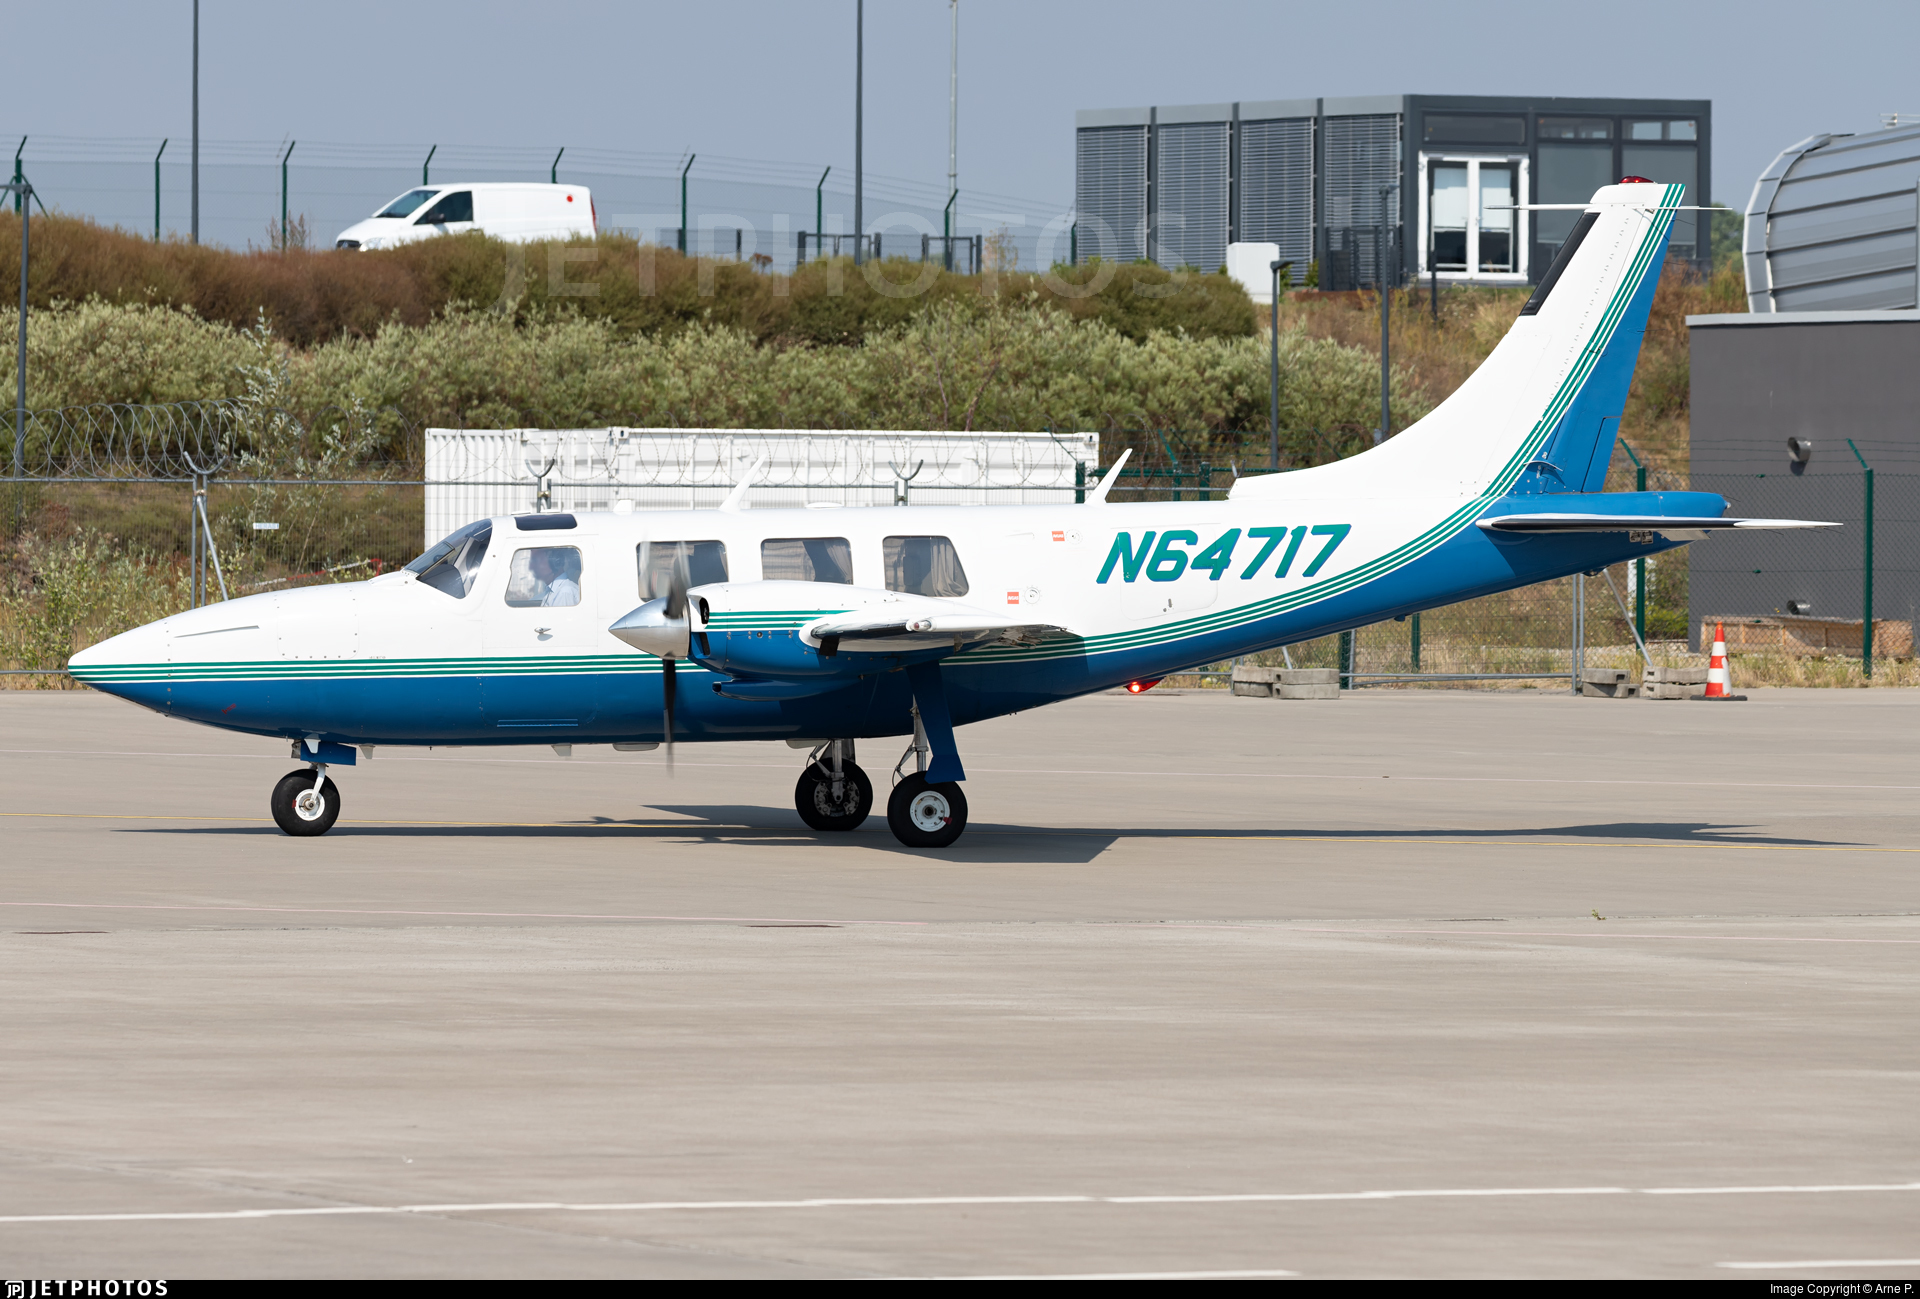 N64717 - Piper PA-60 602P Aerostar  - Private